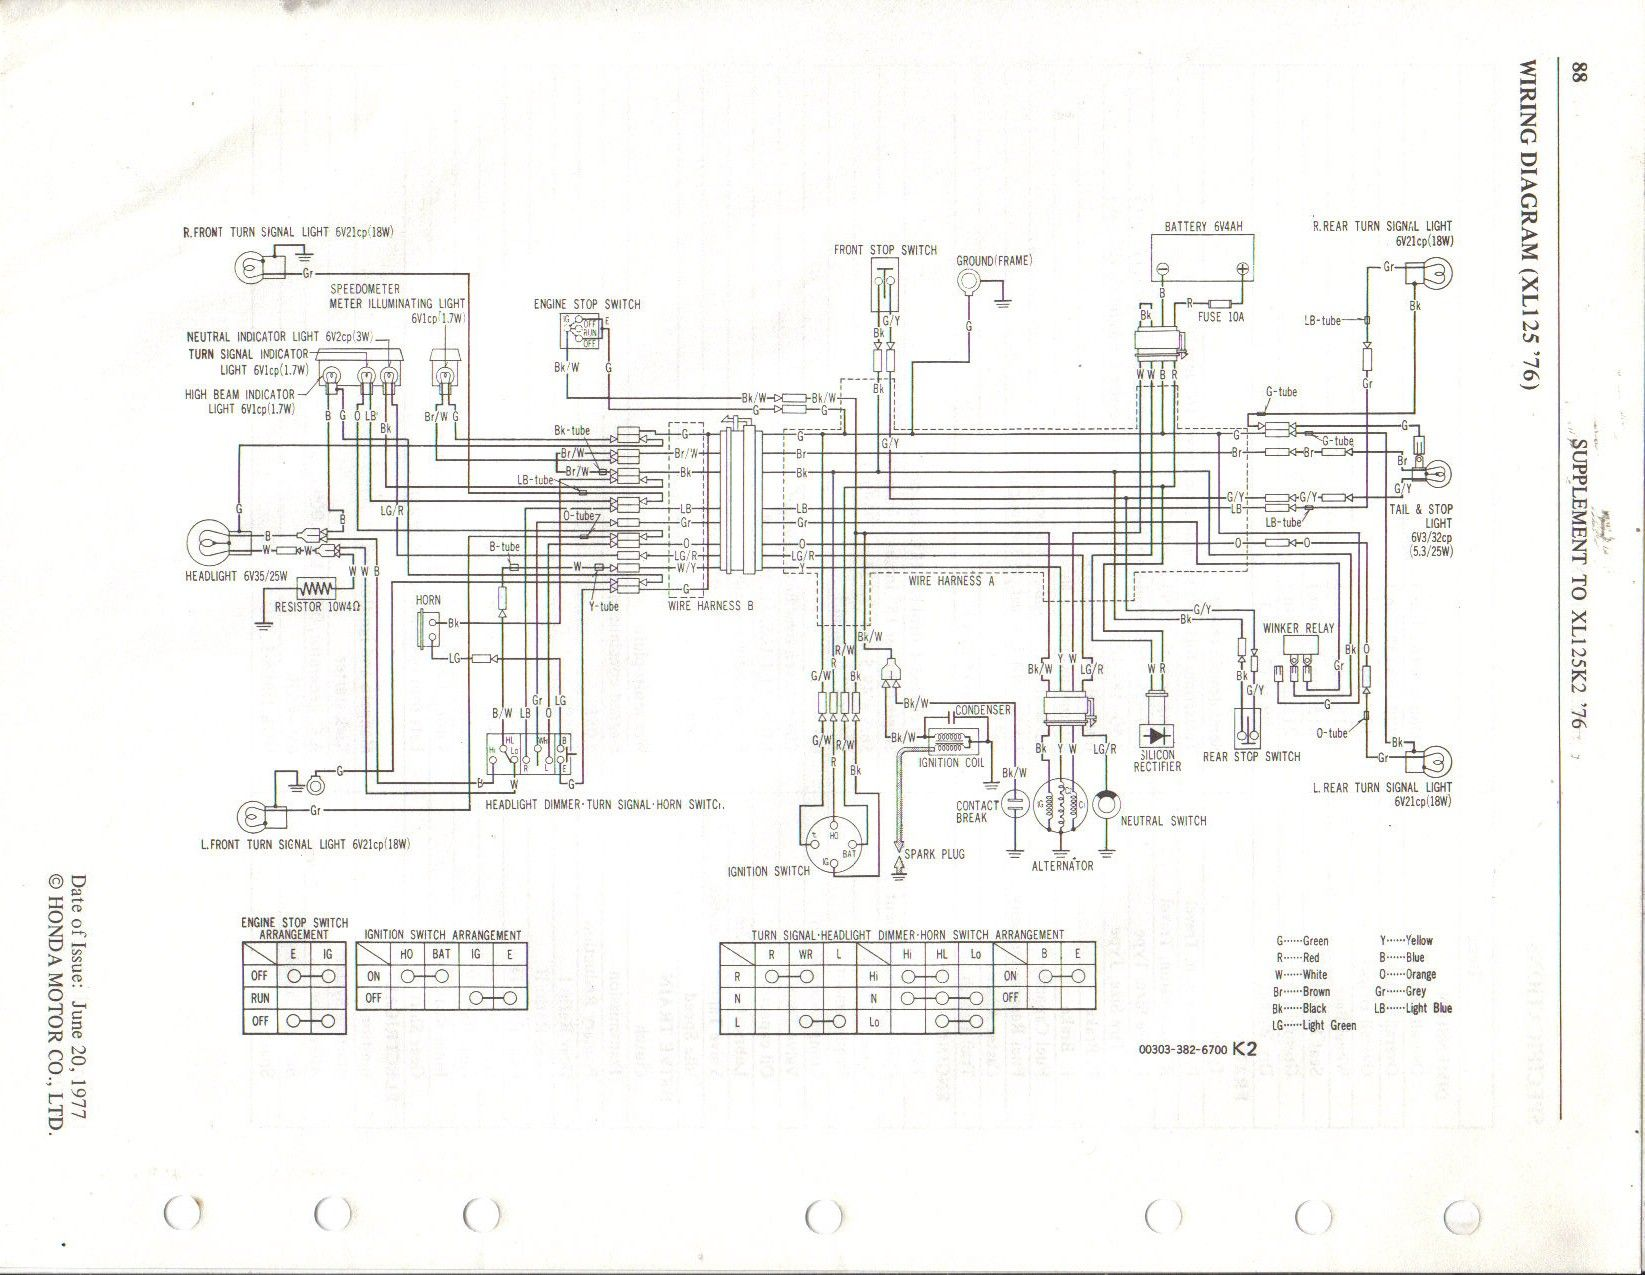 honda xl125 ct125 usa wiring diagram (With images